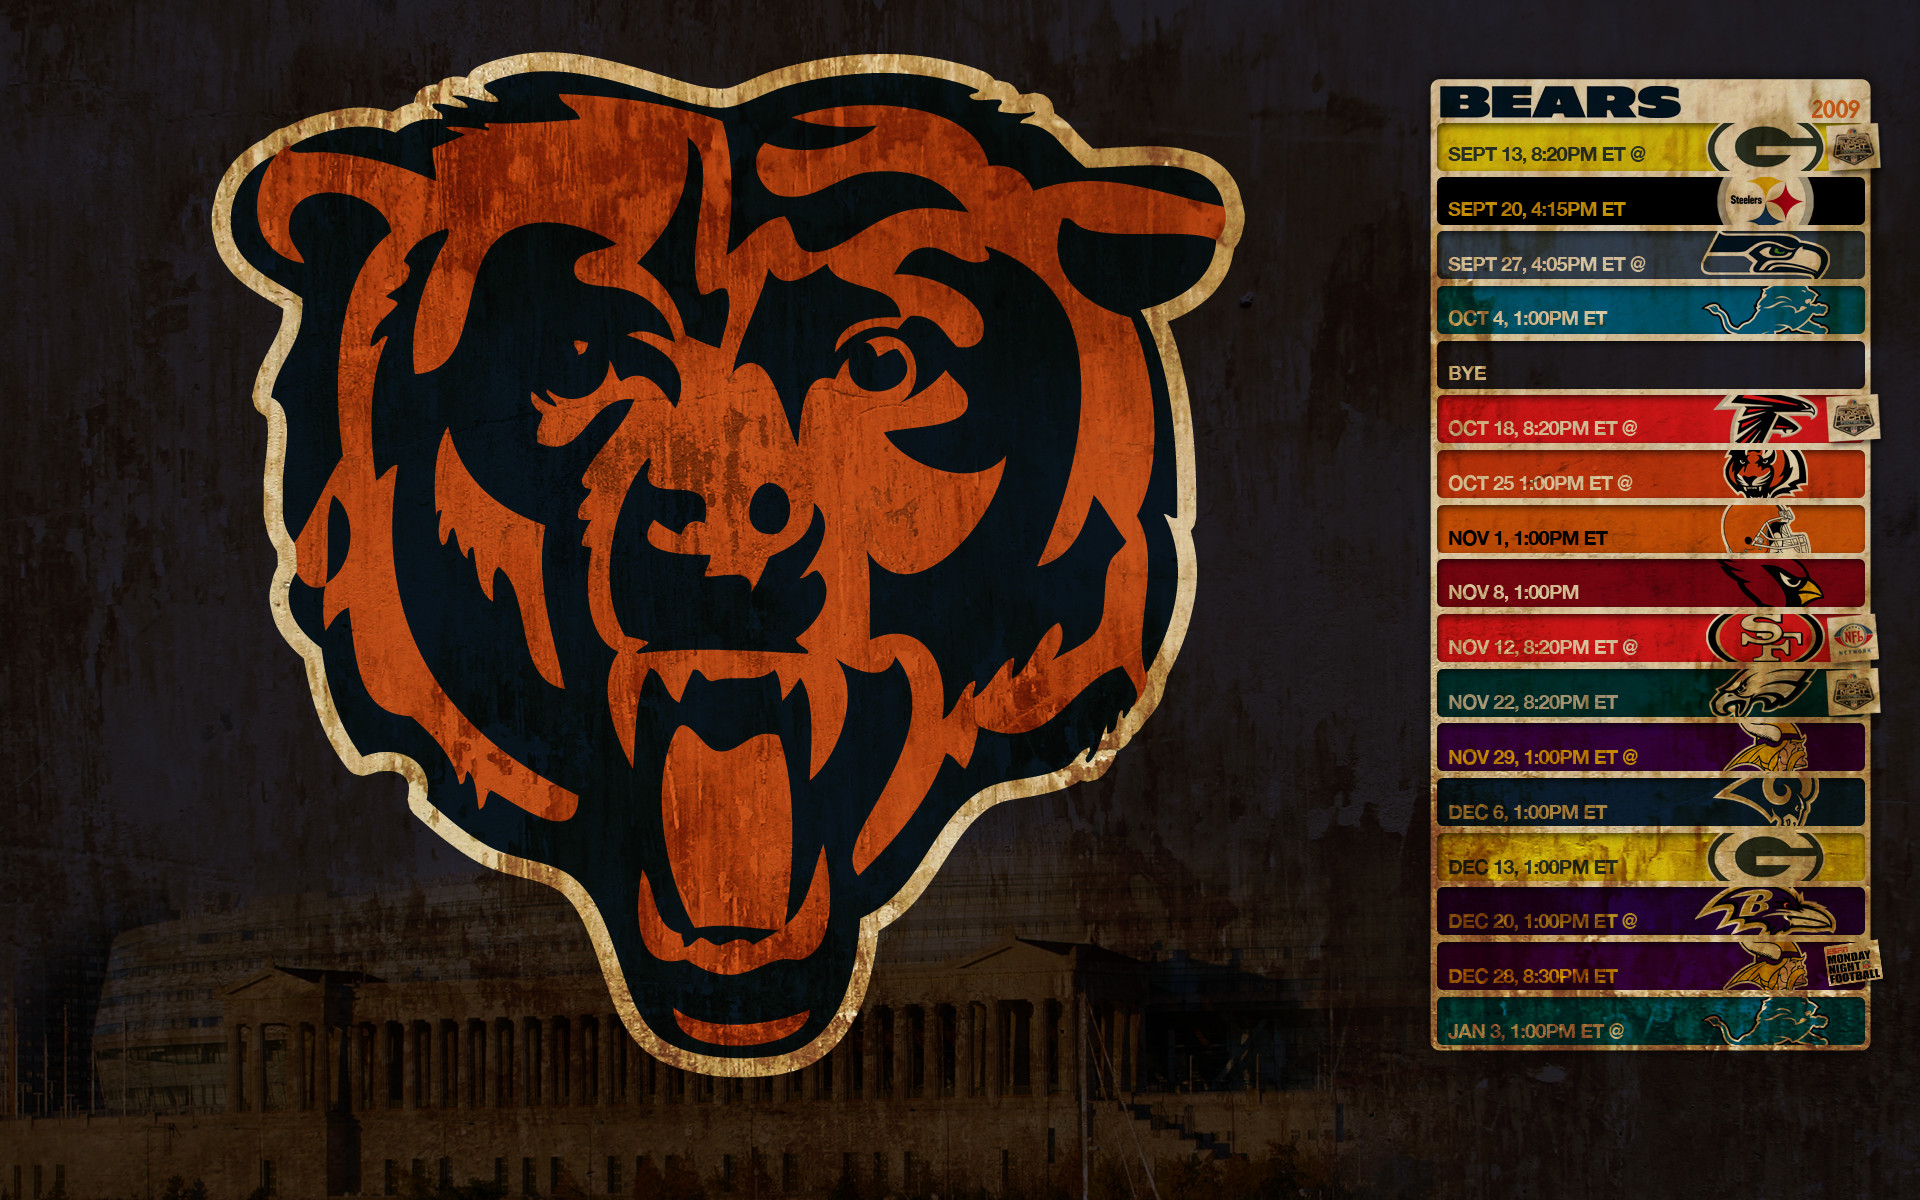 Chicago Sports Wallpaper Iphone 6: Chicago Bears Soldier Field Wallpaper (56+ Images